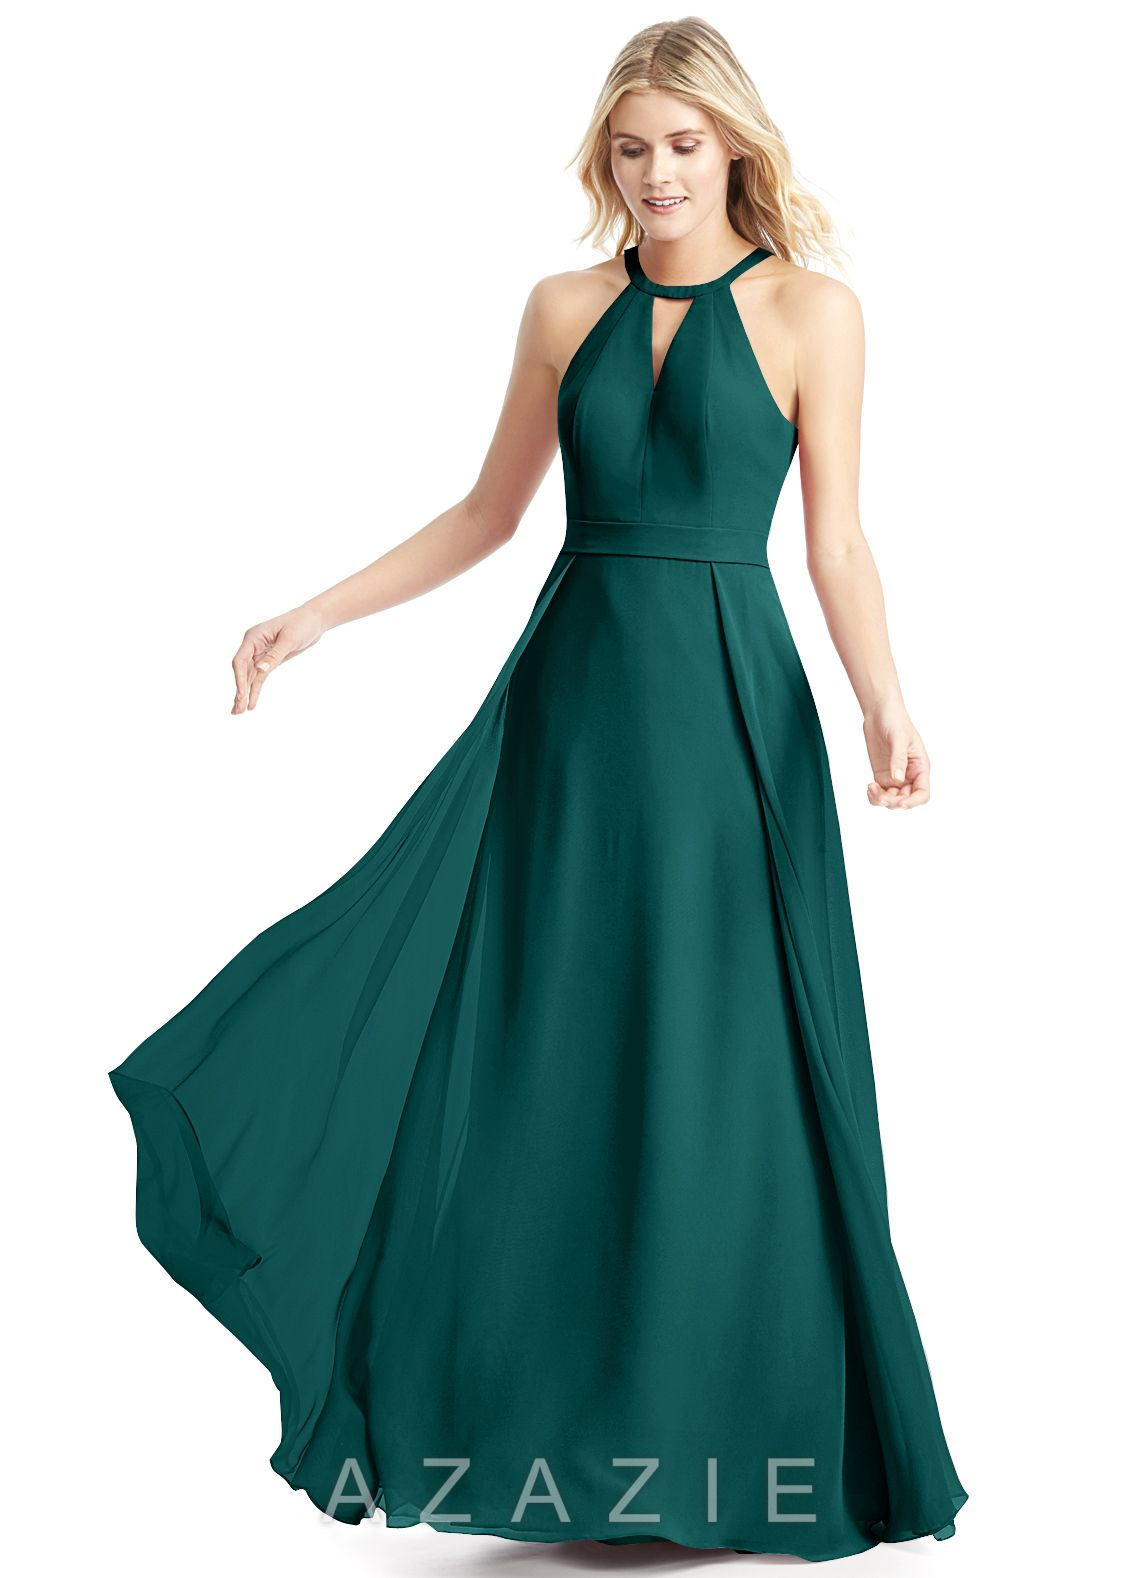 Melody my style pinterest favorite color bridal parties and